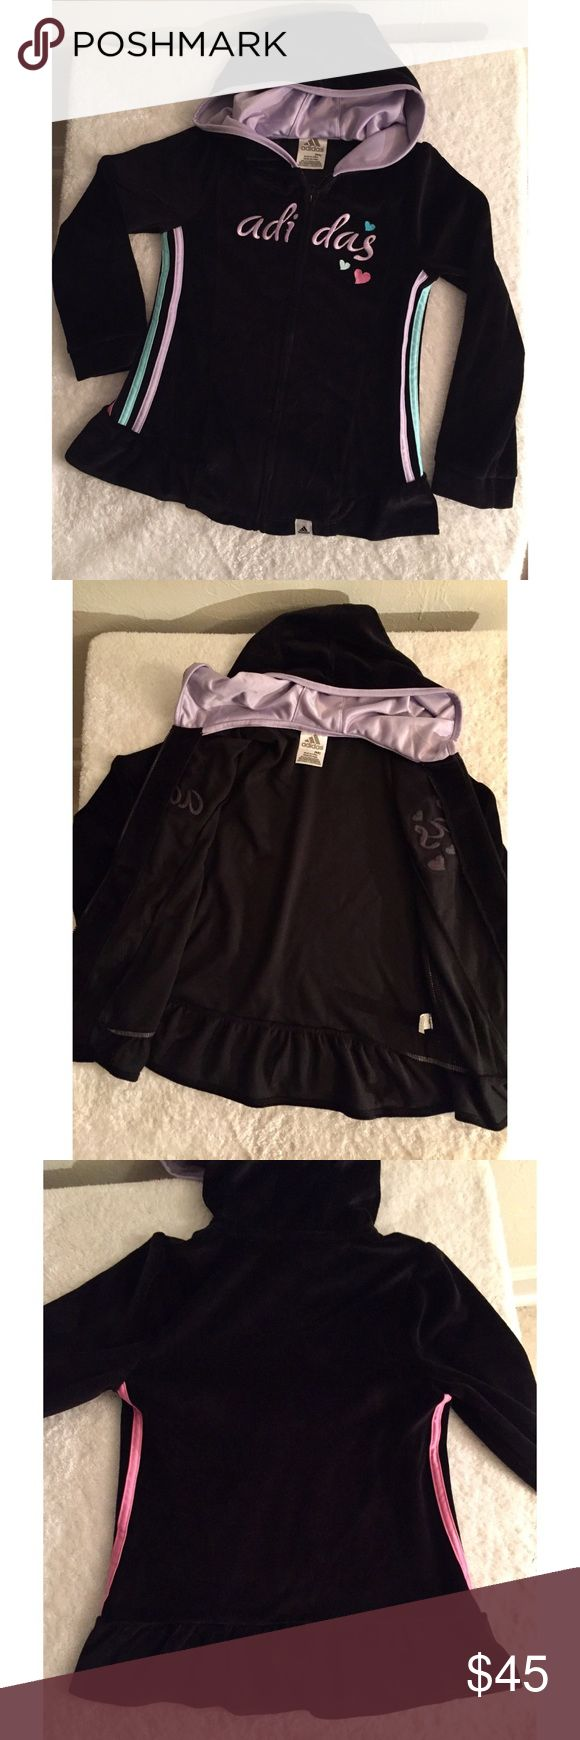 """Girl's Adidas kids zip up hoodie. Three Stripes. Rare Adidas kids girls zip up hoodie with three different color stripes & hearts. This jacket is practically new and it is extremely pretty! It is size 6X, 6X is a true size bigger than size 6 and a true size smaller than 7. 6X is about an inch bigger around and about 2"""" longer in length than a 6. This allows for your child to wear the jacket longer than normal despite growth-- they can be styling for twice as long!! Adidas Shirts & Tops…"""